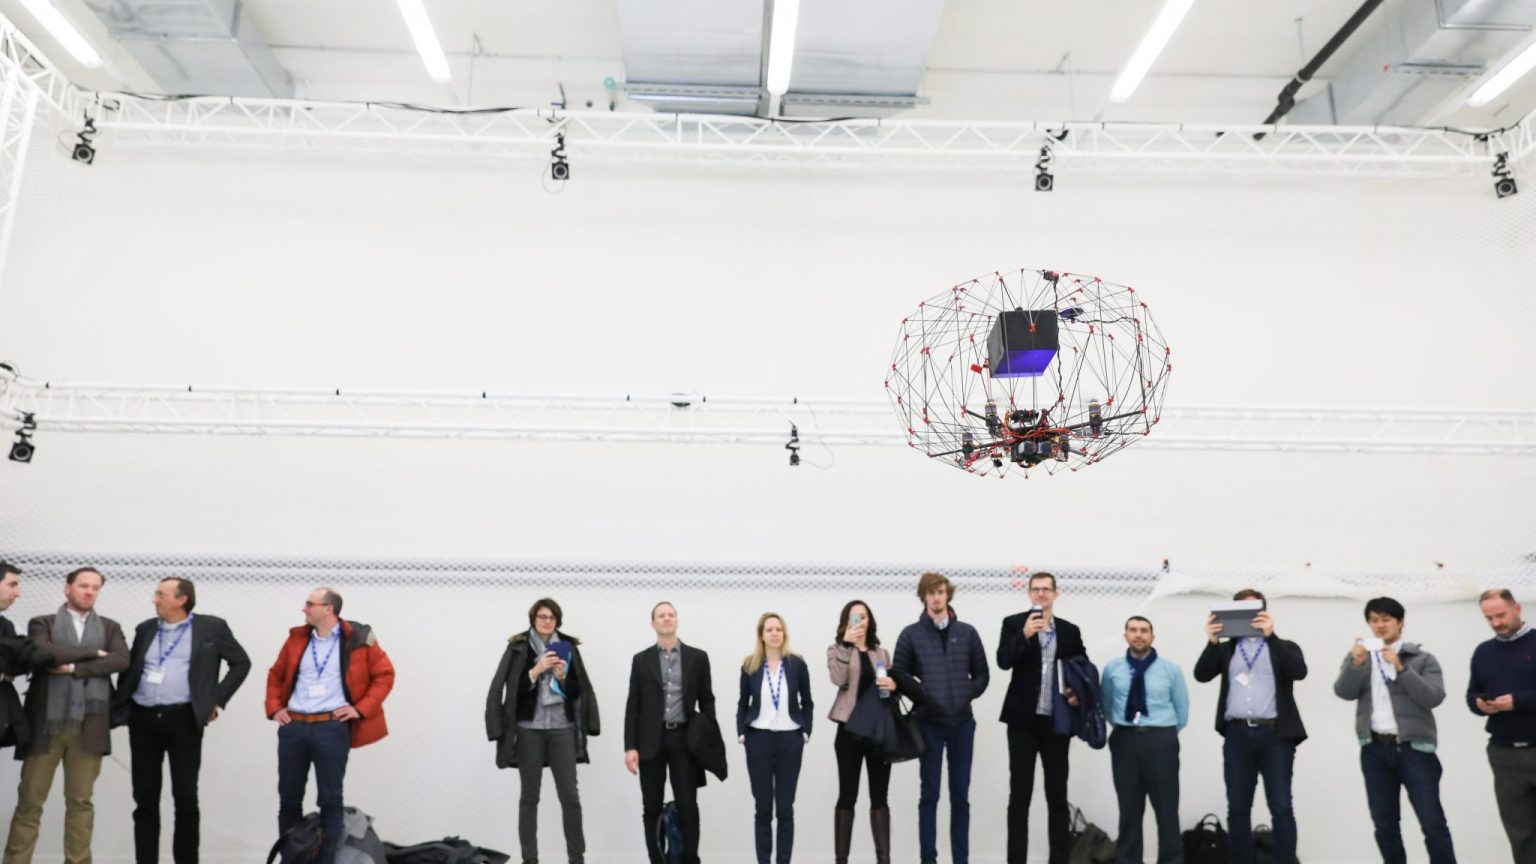 Group of people with drone